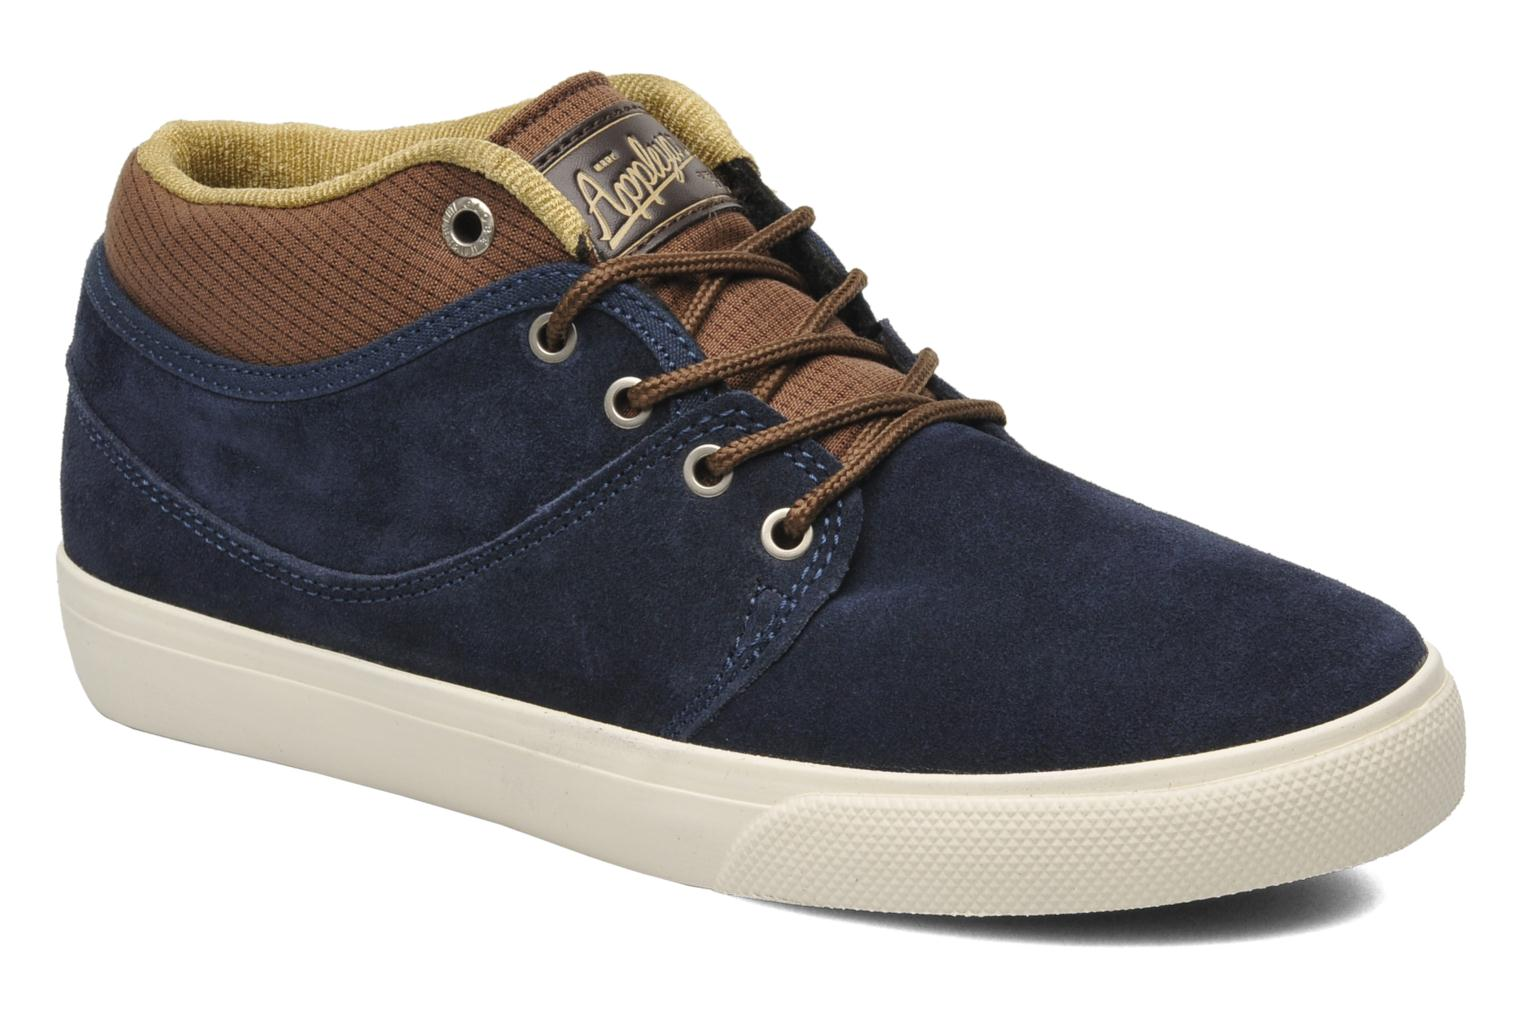 Sneakers Mahalo mid by Globe